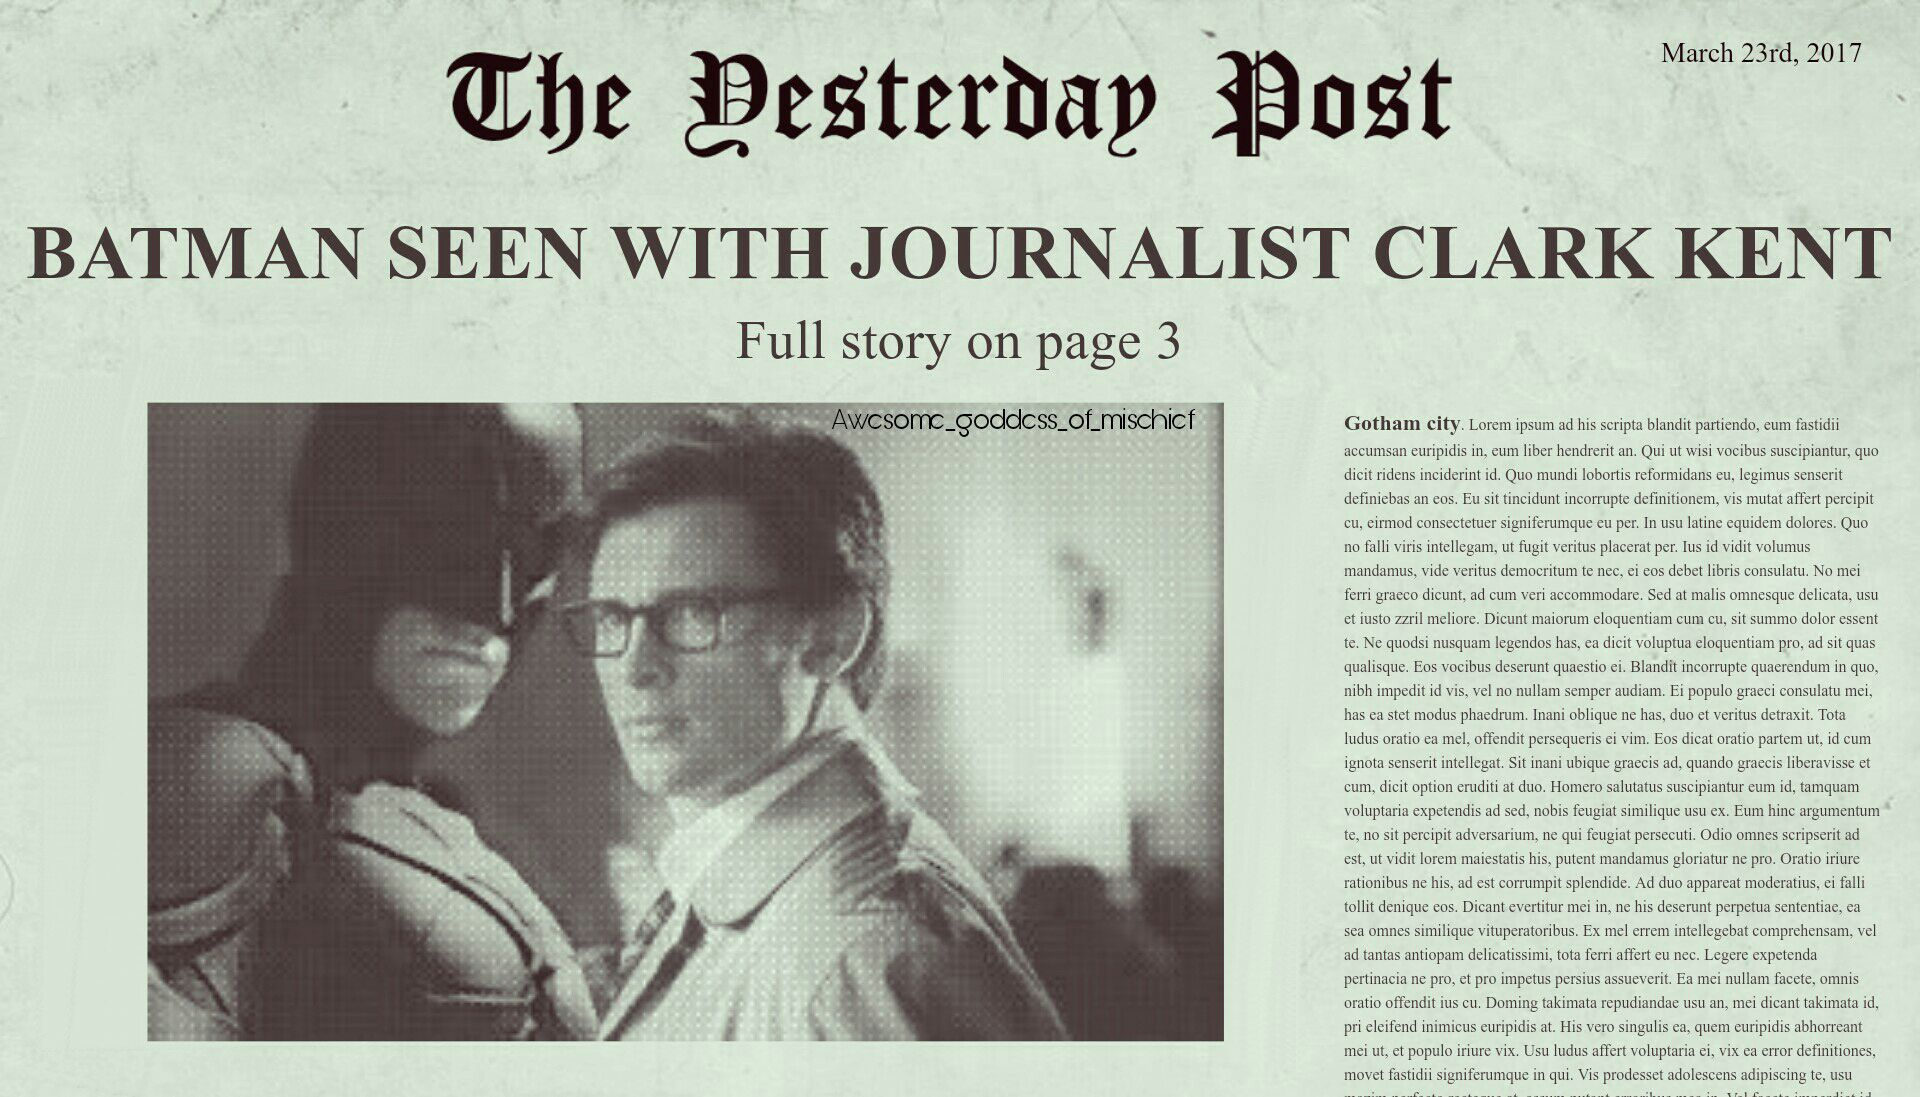 """Batman and Clark Kent standing right next to each other. The picture appears to be printed in a newspaper titled """"The Yesterday's Post"""". The article is titled, """"Batman seen with journalist Clark Kent"""""""